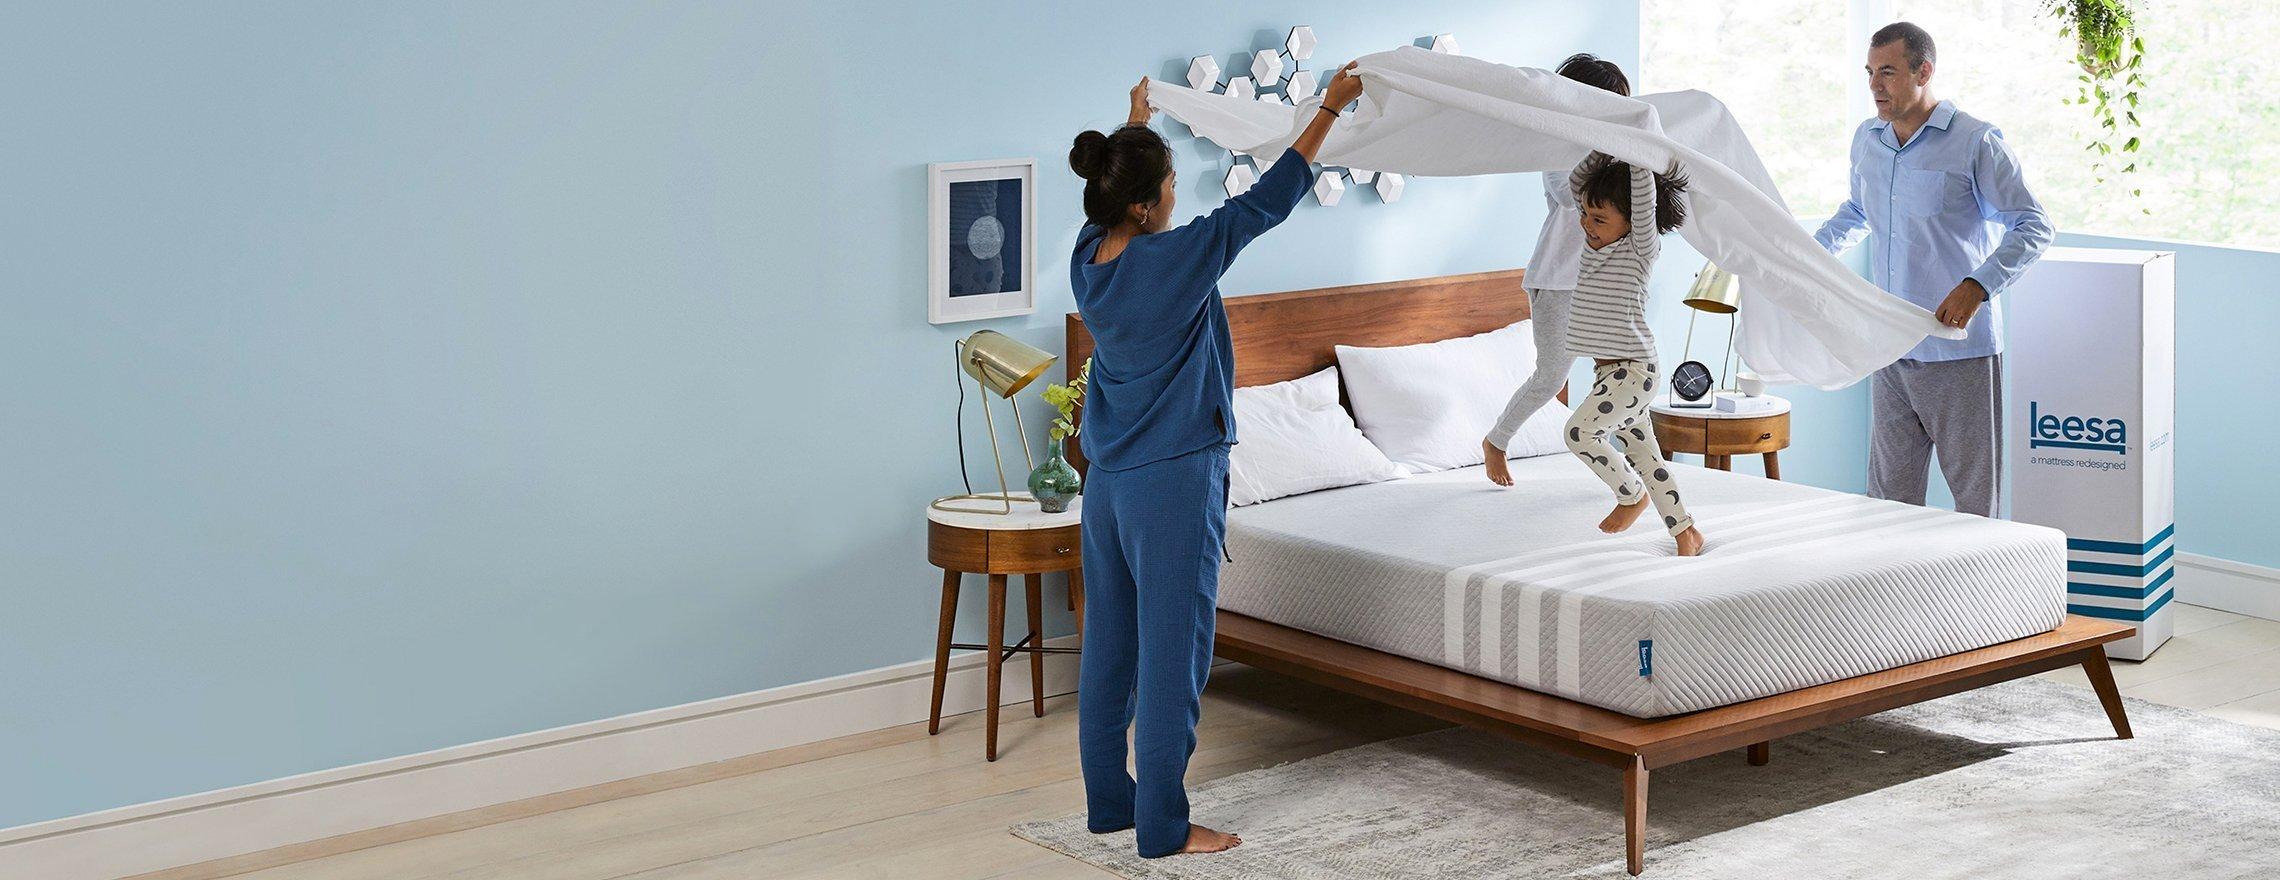 family_playing_on_a_leesa_mattress_in_a_blue_bedroom_1